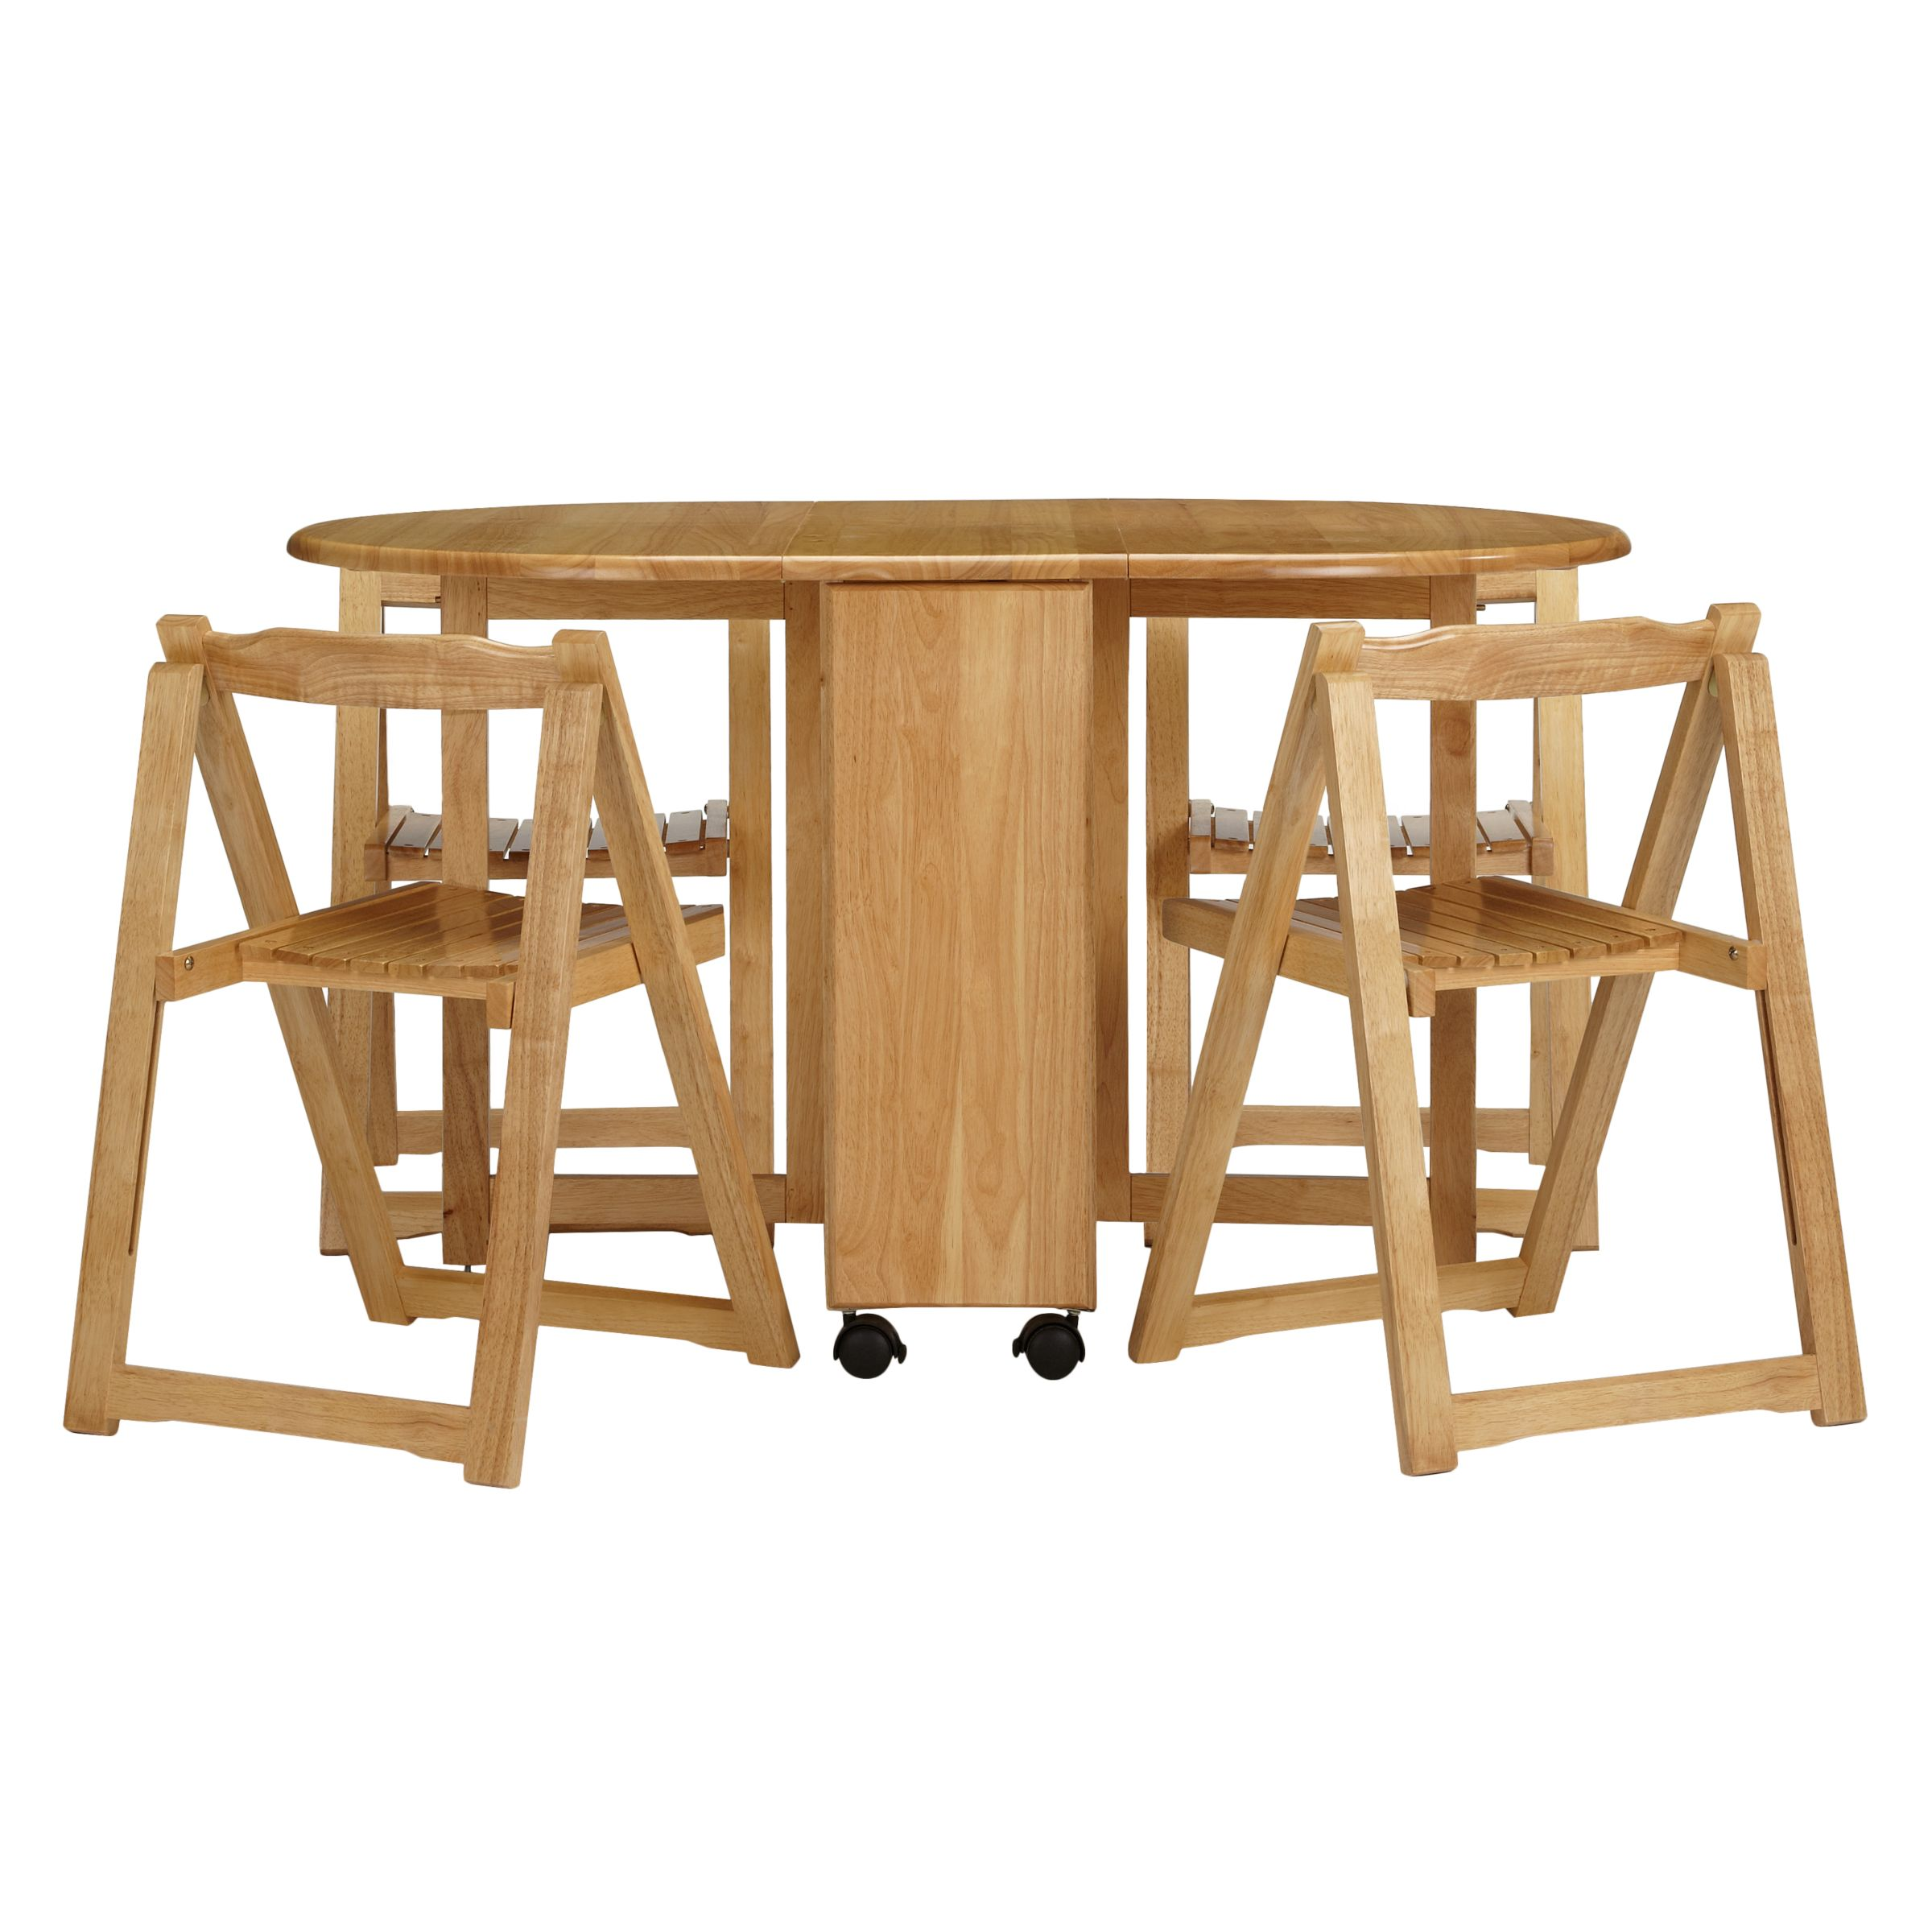 John Lewis Butterfly Drop Leaf Folding Dining Table And Four Chairs At John Lewis Partners